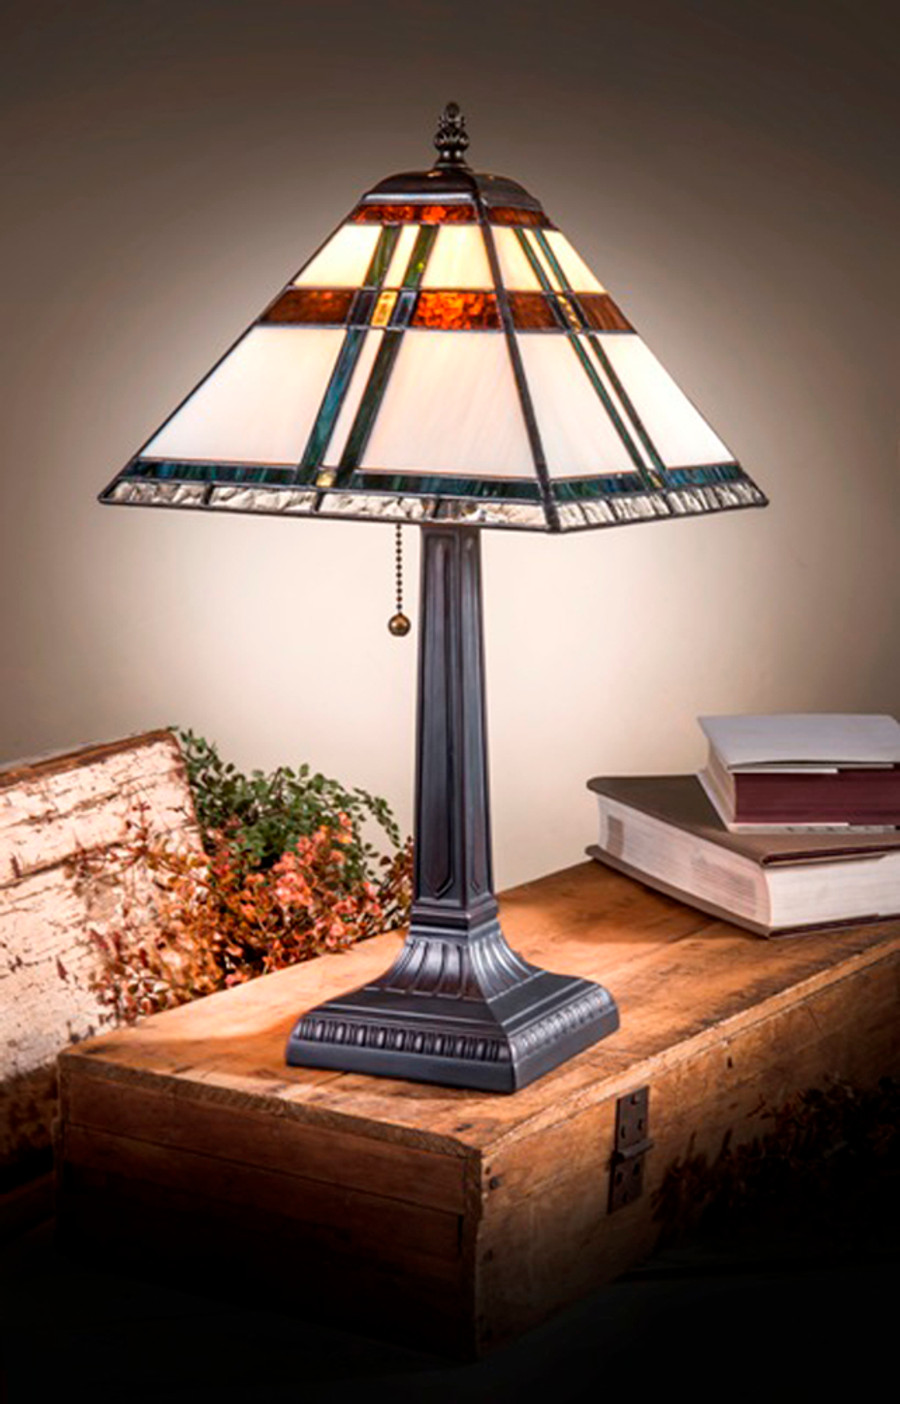 Ivory with Blue, Green & Brown Accents Small Mission Style Table Lamp Lam 690 TB